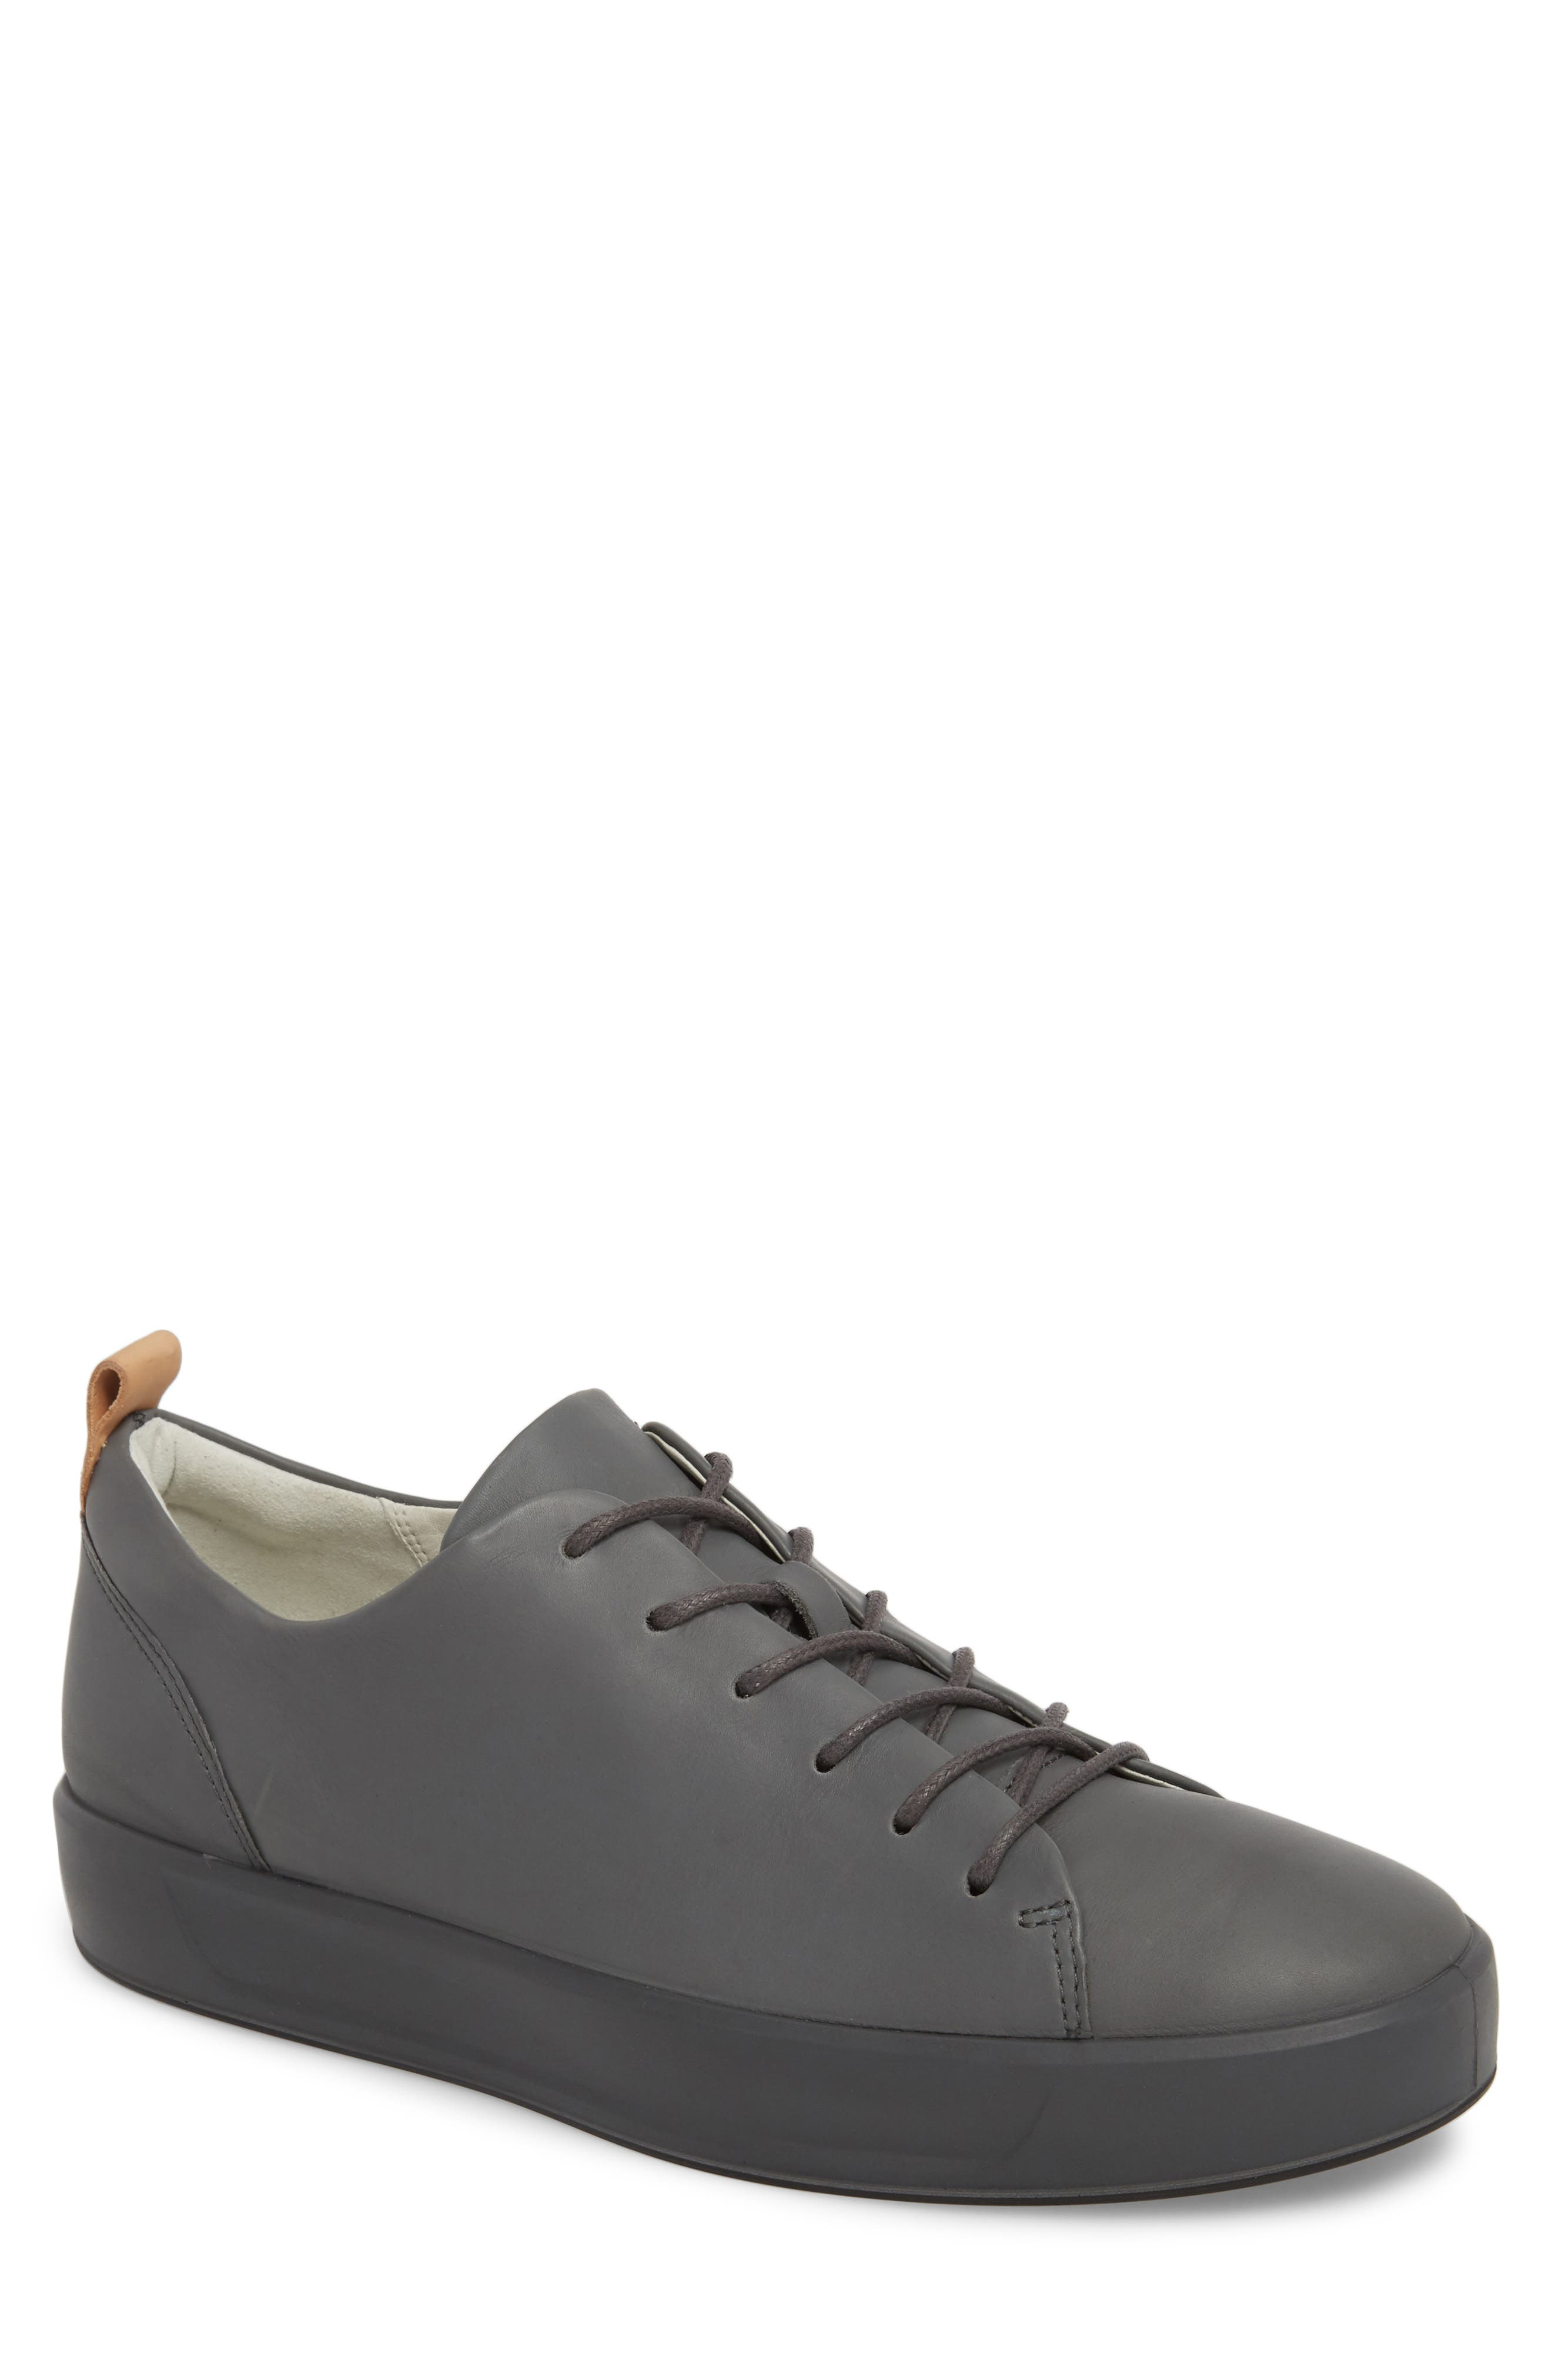 Soft 8 Low Top Sneaker,                             Main thumbnail 1, color,                             068